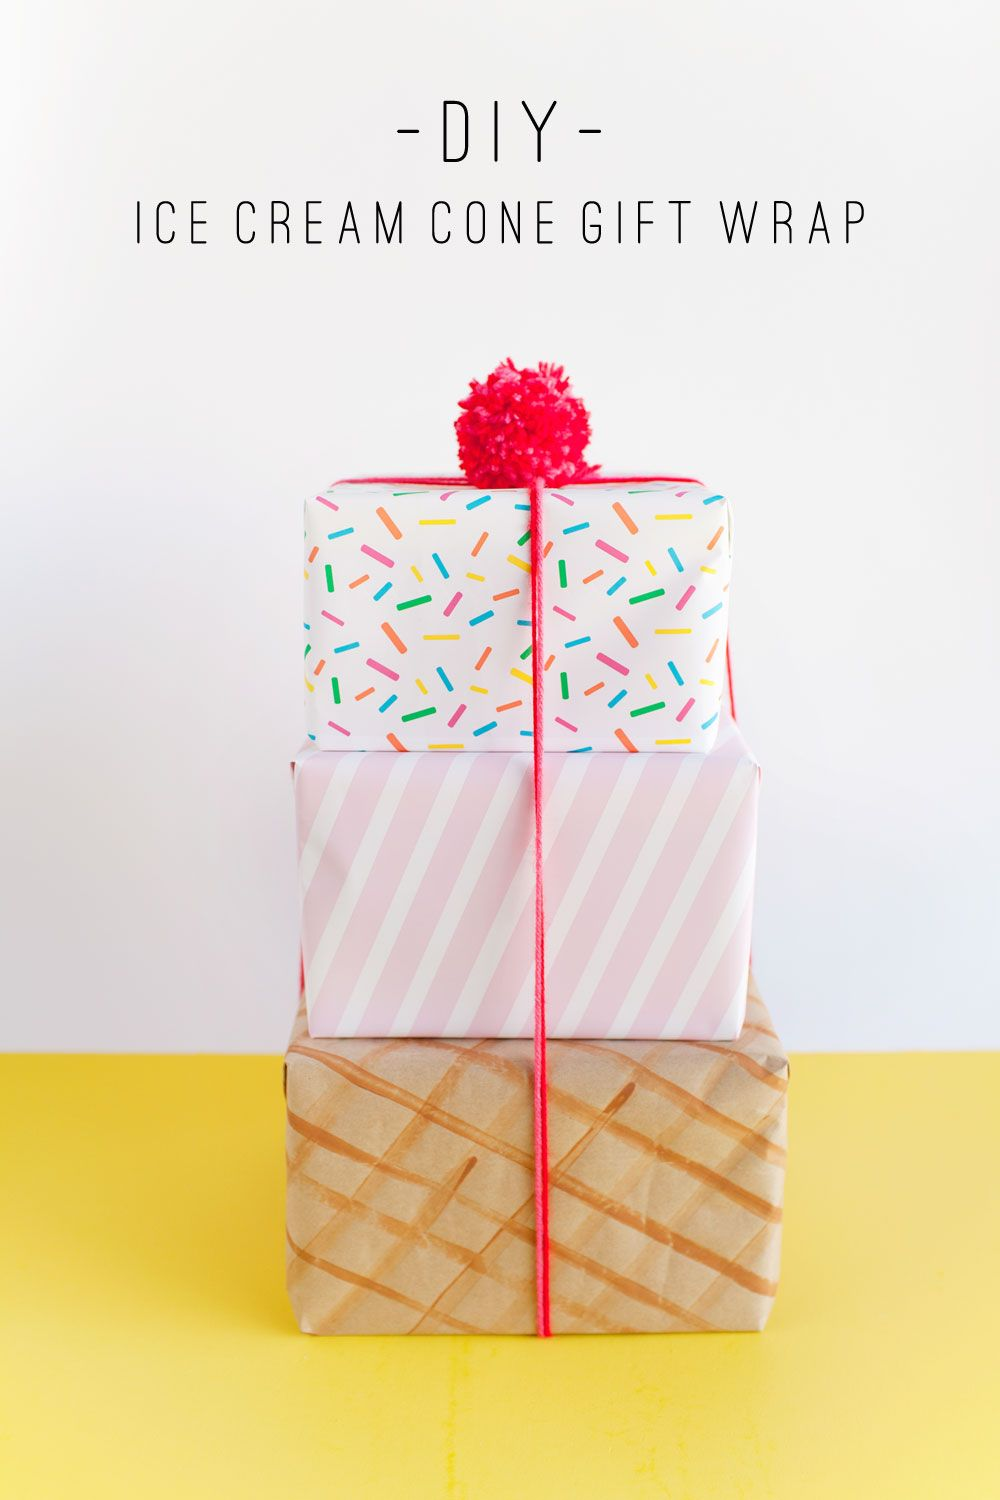 ICE CREAM CONE GIFT WRAP -   25 diy birthday wrapping ideas